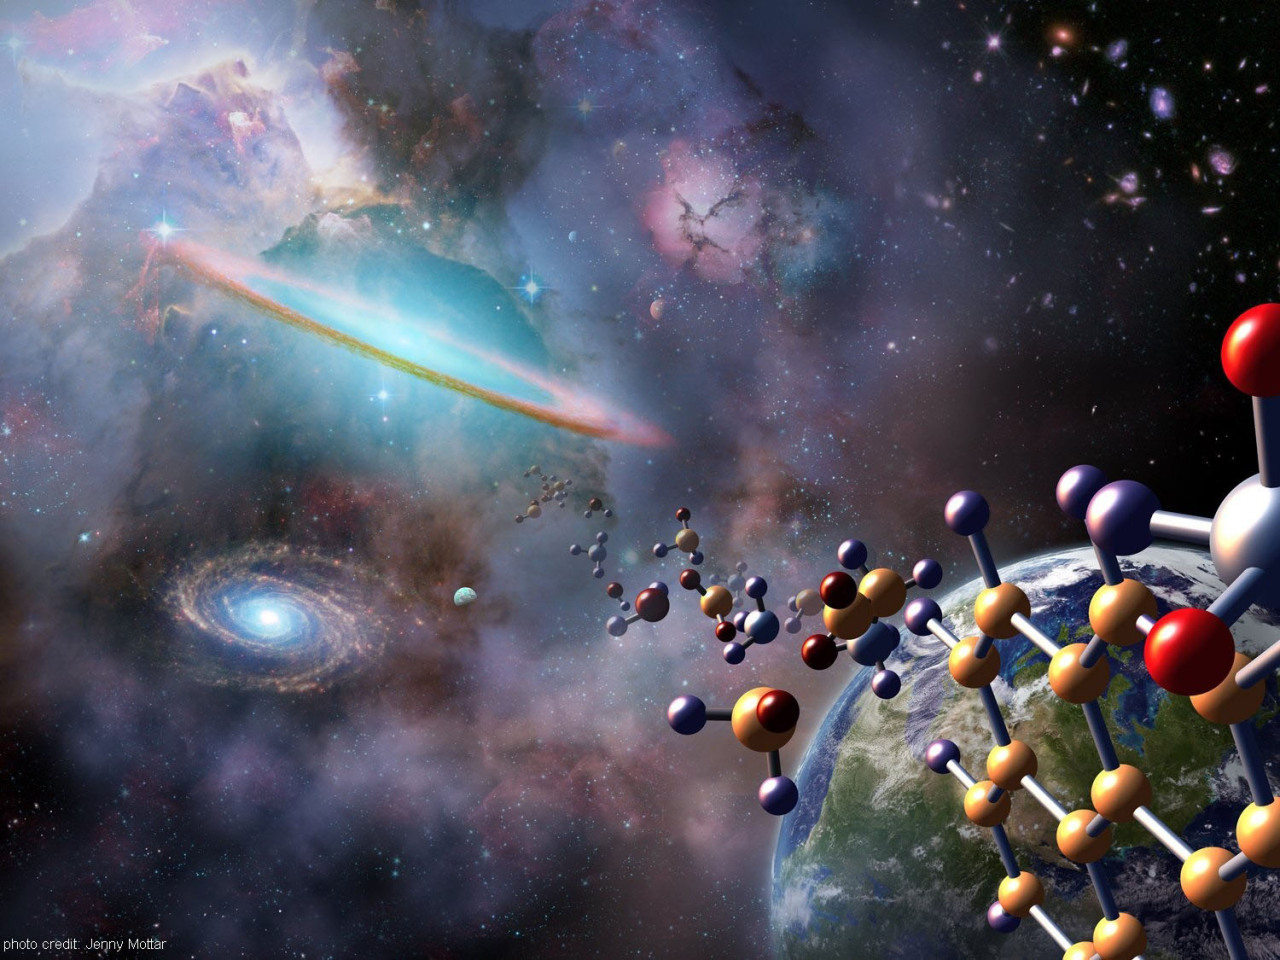 "sagansense:  Origin Of Life: New Study Spotlights Not Chemistry But How Living Things Store, Process Information Scientists trying to unravel the mystery of life's origins have been looking at it the wrong way, a new study argues. Instead of trying to recreate the chemical building blocks that gave rise to life 3.7 billion years ago, scientists should use key differences in the way that living creatures store and process information, suggests new research detailed today (Dec. 11) in the Journal of the Royal Society Interface. ""In trying to explain how life came to exist, people have been fixated on a problem of chemistry, that bringing life into being is like baking a cake, that we have a set of ingredients and instructions to follow,"" said study co-author Paul Davies, a theoretical physicist and astrobiologist at Arizona State University. ""That approach is failing to capture the essence of what life is about."" Living systems are uniquely characterized by two-way flows of information, both from the bottom up and the top down in terms of complexity, the scientists write in the article. For instance, bottom up would move from molecules to cells to whole creatures, while top down would flow the opposite way. The new perspective on life may reframe the way that scientists try to uncover the origin of life and hunt for strange new life forms on other planets. ""Right now, we're focusing on searching for life that's identical to us, with the same molecules,"" said Chris McKay, an astrobiologist at the NASA Ames Research Center who was not involved in the study. ""Their approach potentially lays down a framework that allows us to consider other classes of organic molecules that could be the basis of life."" Chemical approach For decades, scientists have tried to recreate the primordial events that gave rise to life on the planet. In the famous Miller-Urey experiments reported in 1953, scientists electrically charged a primordial soup of chemicals that mimicked the chemical makeup of the planet's early oceans and found that several simple amino acids, the most primitive building blocks of life, formed as a result. But since then, scientists aren't much further along in understanding how simple amino acids could have eventually morphed into simple, and then complex, living beings. Part of the problem is that there isn't really a good definition of what life is, said Sara Walker, study co-author and an astrobiologist at Arizona State University. ""Usually the way we identify life on Earth is always by having DNA present in the organism,"" Walker told LiveScience. ""We don't have a rigorous mathematical way of identifying it."" Using a chemical definition of life — for instance, requiring DNA — may limit the hunt for extraterrestrial life, and it also may wrongly include nonliving systems, for instance, a petri dish full of self-replicating DNA, she said. Information processing Walker's team created a simple mathematical model to capture the transition from a nonliving to a living-breathing being. According to the researchers, all living things have one property that inanimate objects don't: Information flows in two directions. For instance, when a person touches a hot stove, the molecules in his hand sense heat, transmit that information to the brain, and the brain then tells the molecules of the hand to move. Such two-way information flow governs the behavior of simple and complex life forms alike, from the tiniest bacteria to the giant humpback whale. By contrast, if you put a cookie on the stove, the heat may burn the cookie, but the treat won't do anything to respond. Another hallmark of living beings is that they have different physical locations for storing and reading information. For instance, the alphabet of letters in DNA carries the instructions for life, but another part of the cell, called the ribosome, must translate those instructions into actions inside the cell, Davies told LiveScience. (By this definition, computers, which store data on a hard drive and read it off using a central processing unit, would have the hallmarks of life, although that doesn't mean they are alive per se, Walker said.) The new model is still in its infancy and doesn't yet point to new molecules that could have spawned life on other planets. But it lays out the behavior needed for a system needs to be considered living, Walker said. ""This is a manifesto,"" said Davies. ""It's a call to arms and a way to say we've got to reorient and redefine the subject and look at it in a different way."""